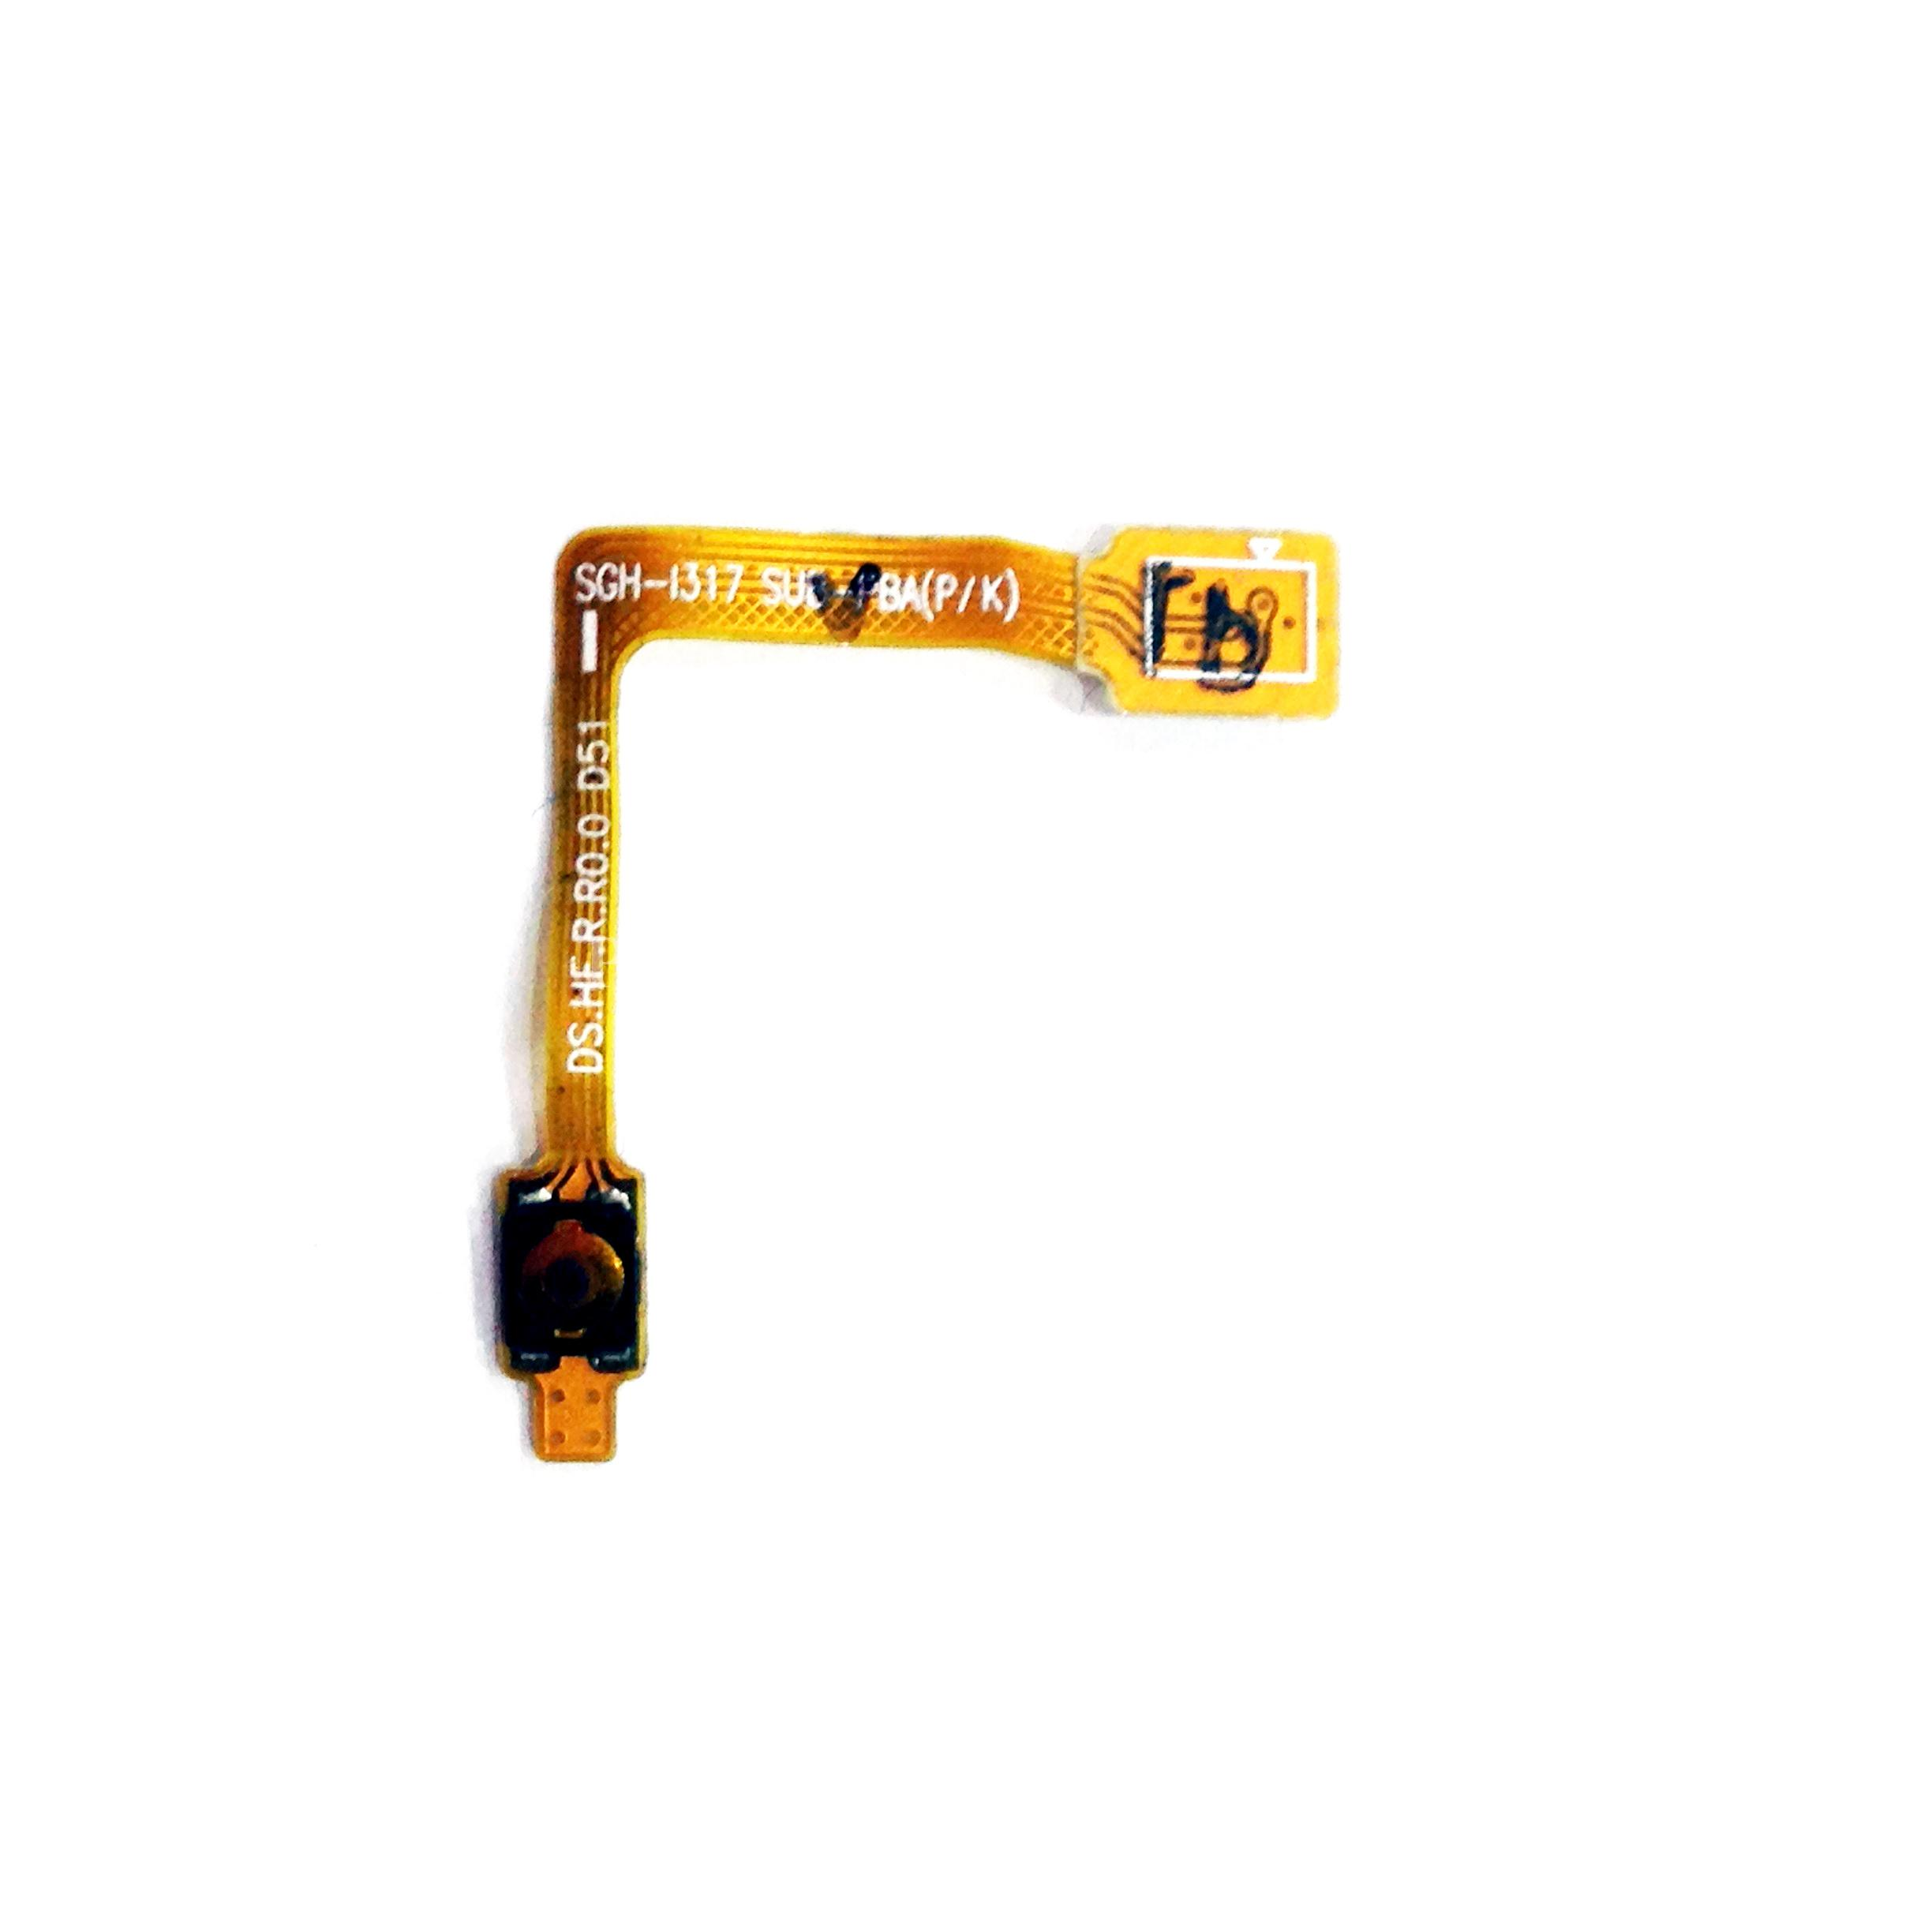 2x For Samsung Galaxy Note 2 N7100 N7105 High Quality Power On Off Button Switch Flex Cable Power Flex Cable Replacement Parts